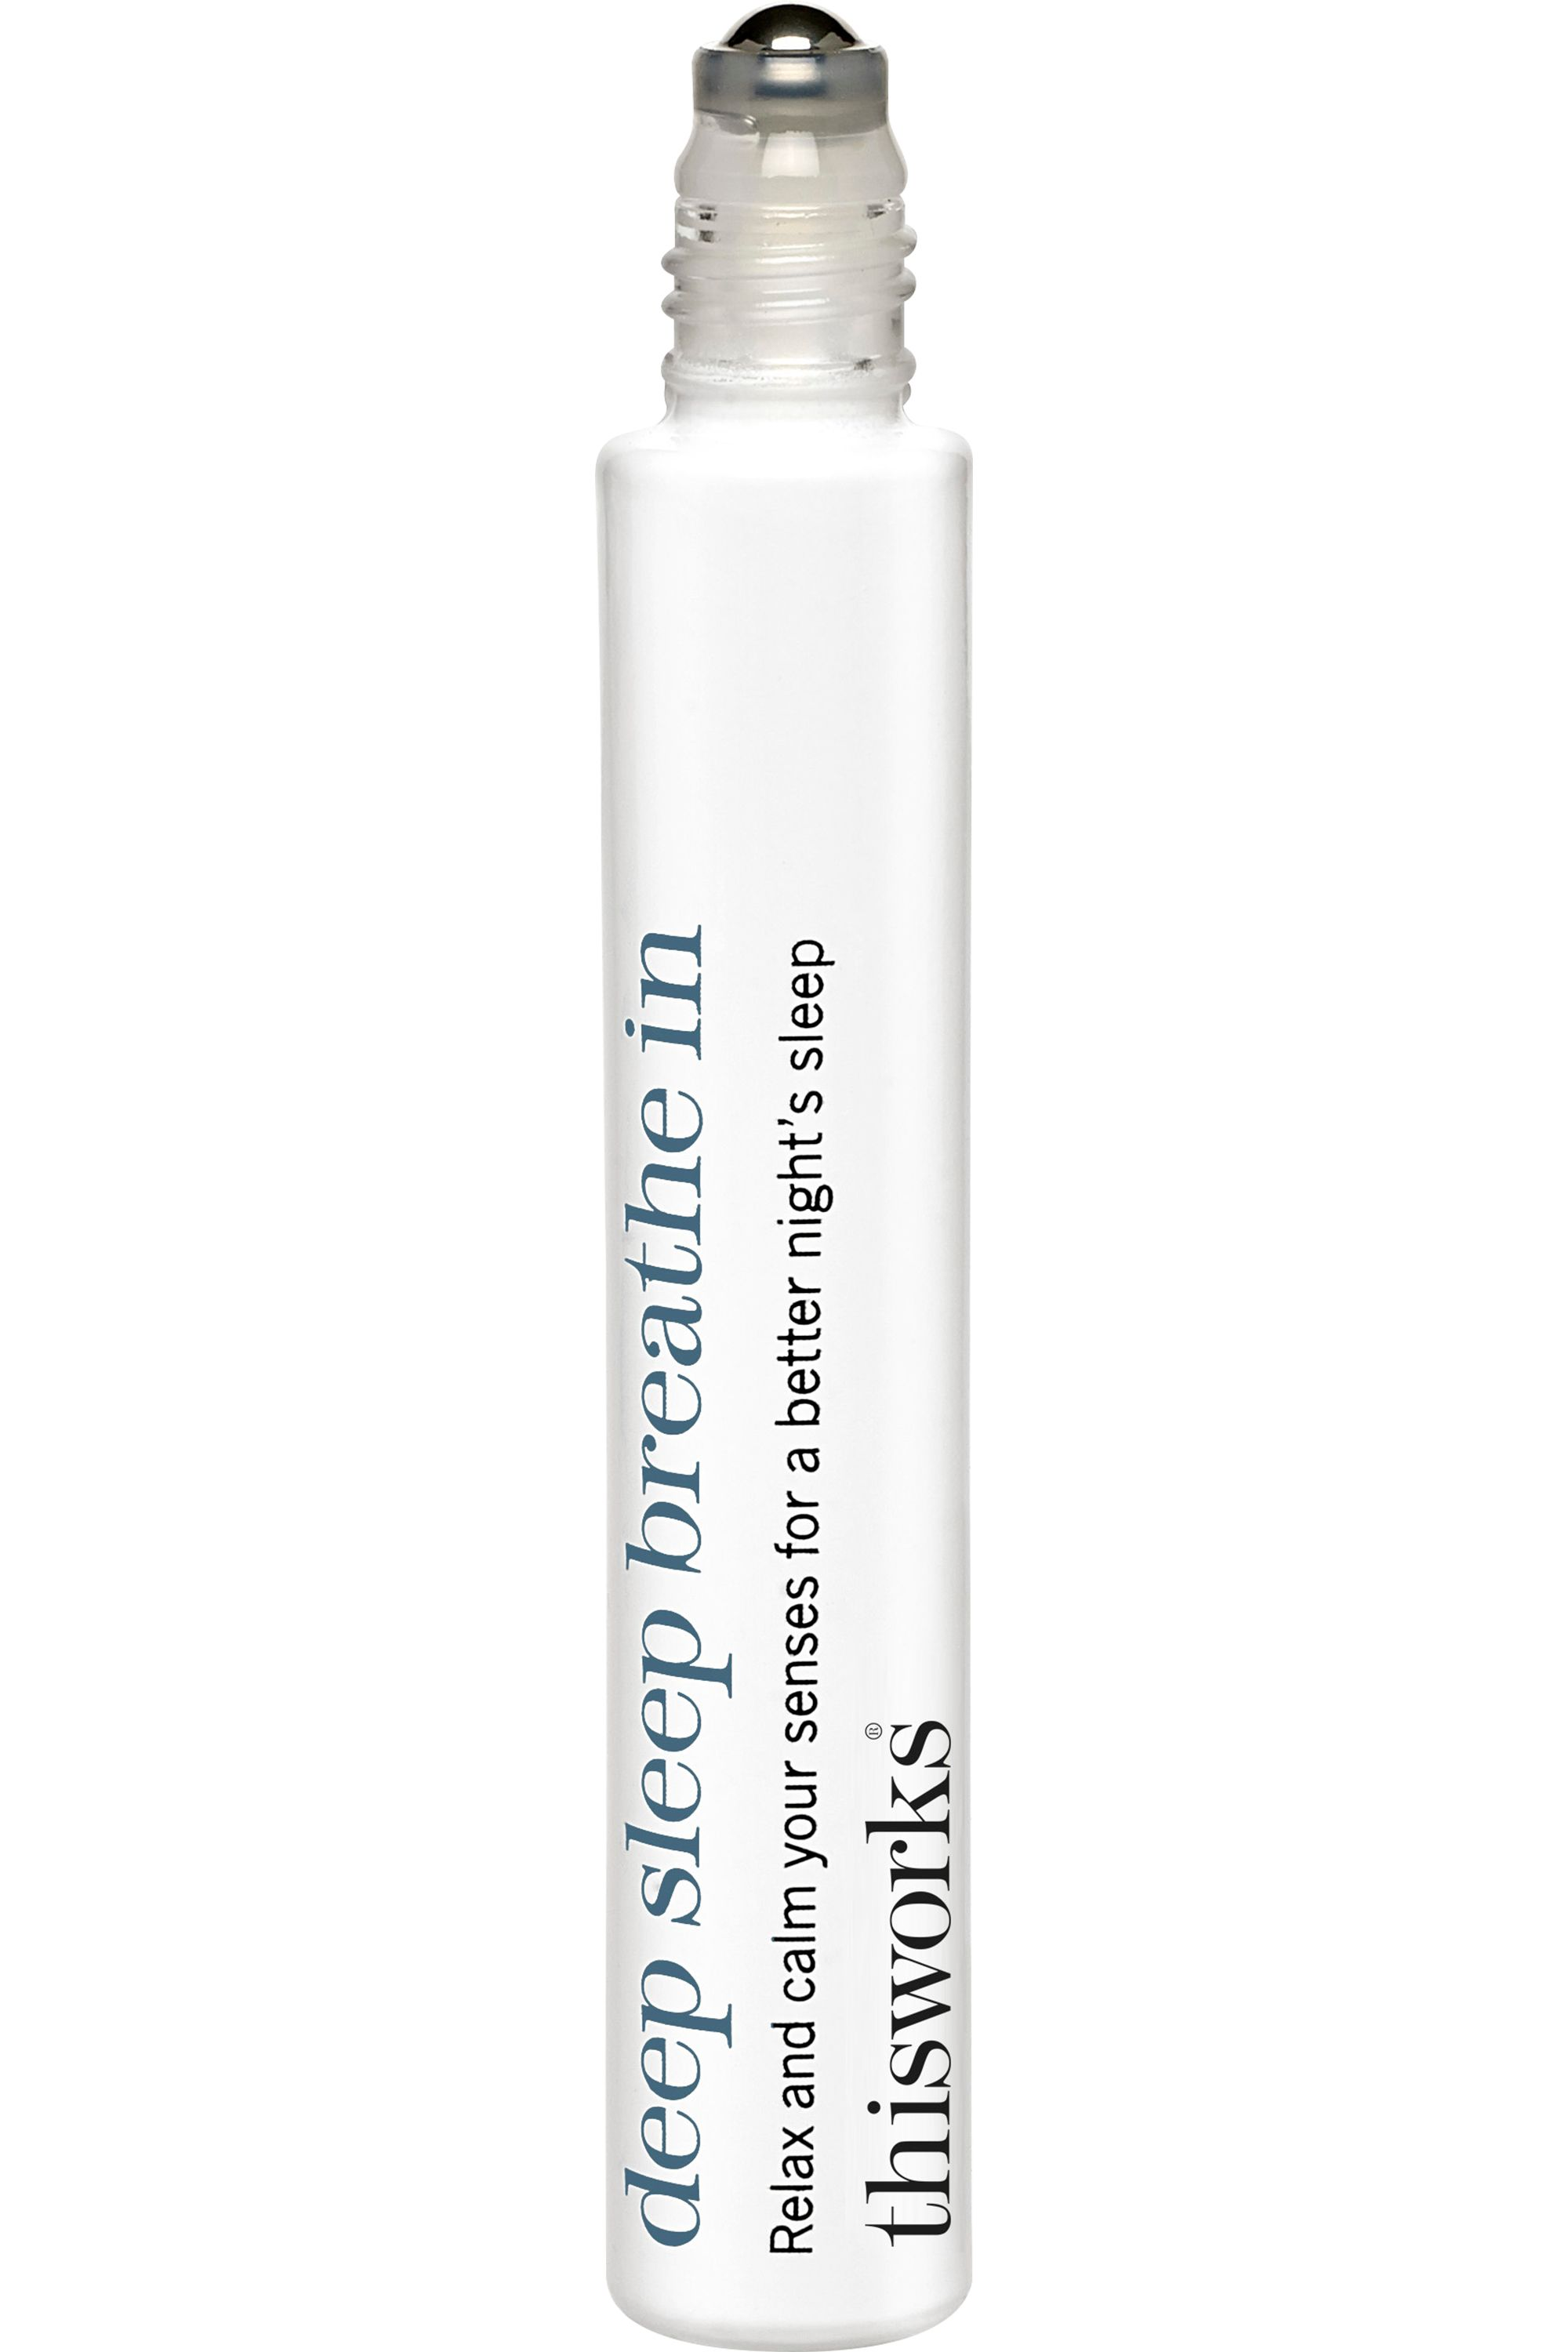 Blissim : This Works - Roll-on sommeil profond - Roll-on sommeil profond